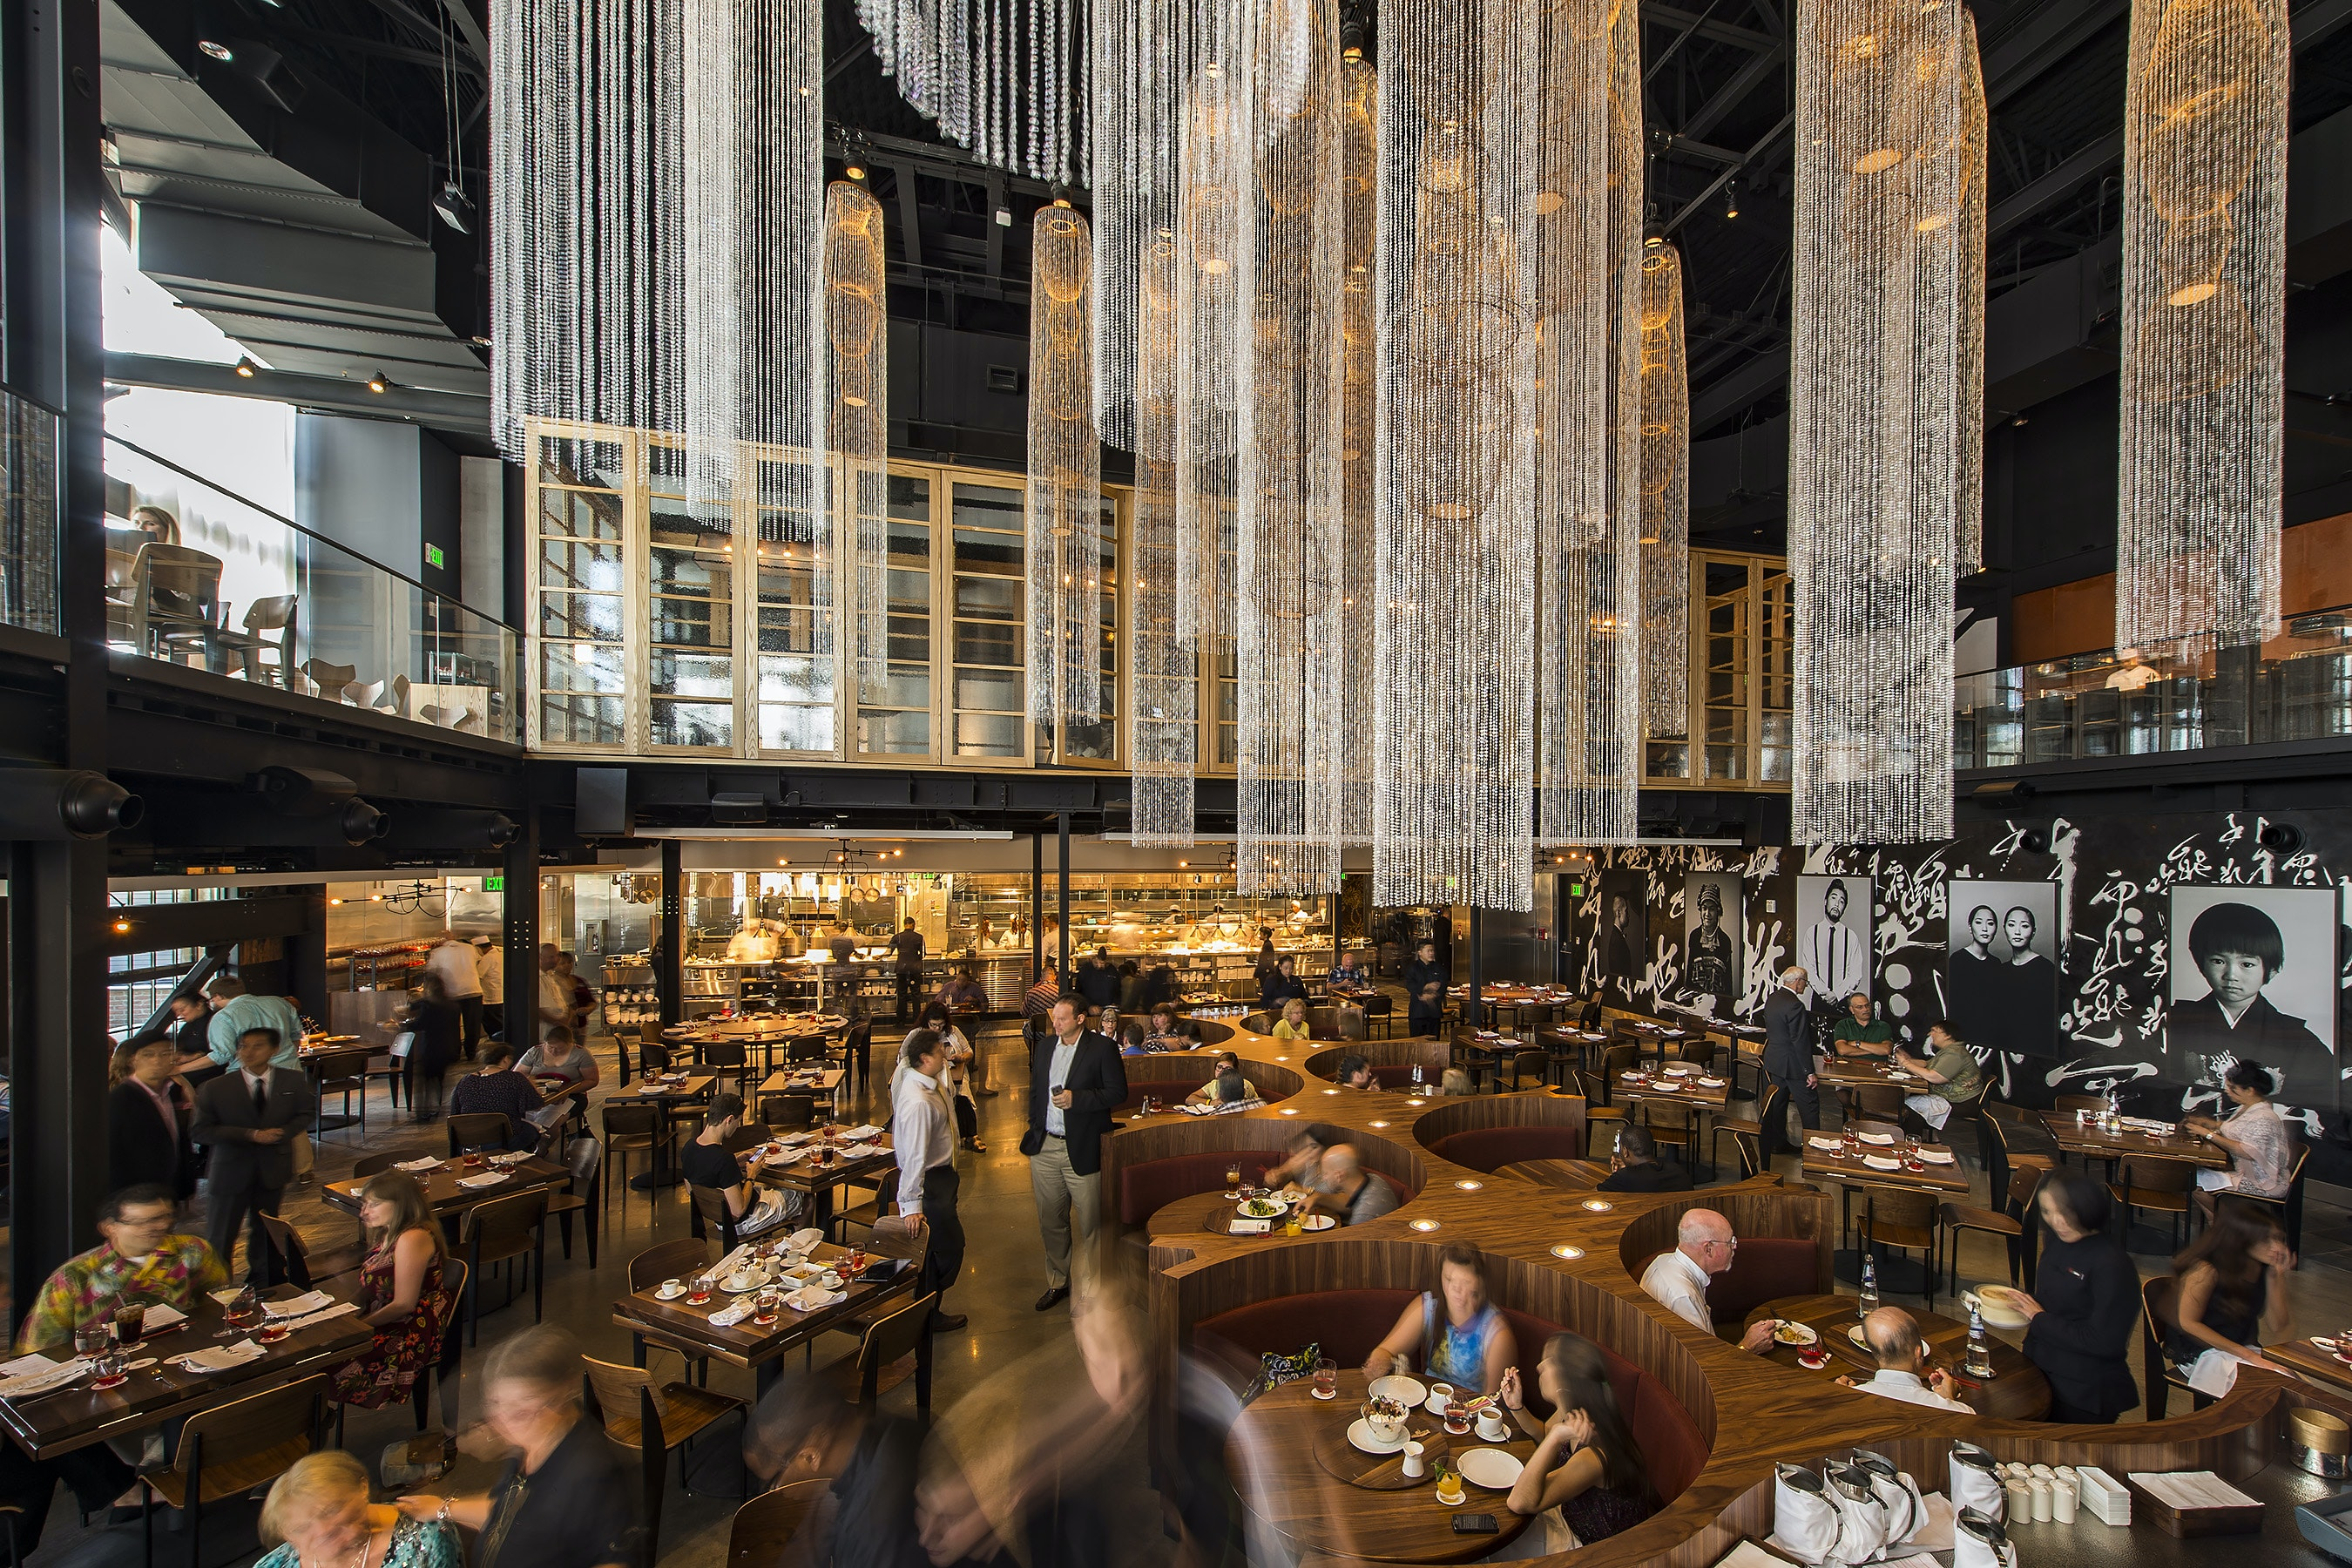 Morimoto Asia is built to accommodate parties of all sizes, from intimate gatherings to large celebrations.